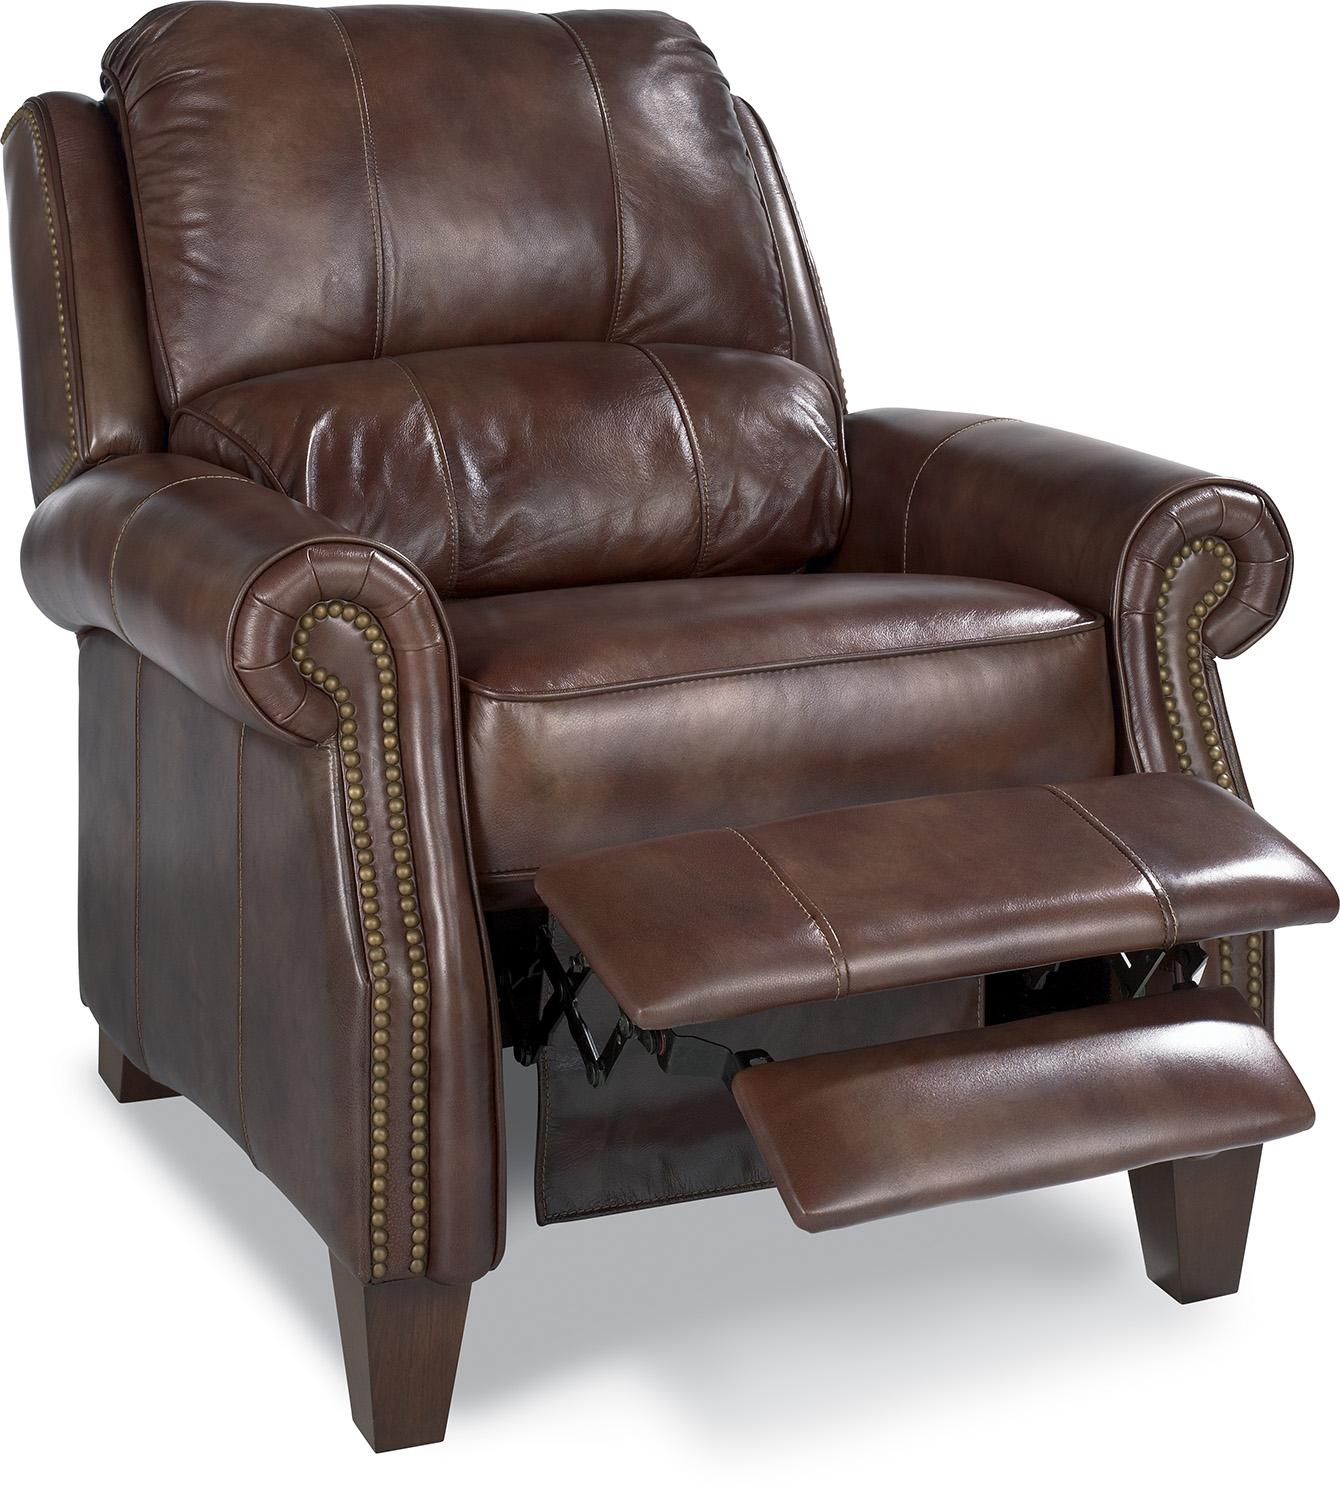 Tarleton Recliner By La Z Boy Wolf And Gardiner Wolf Furniture